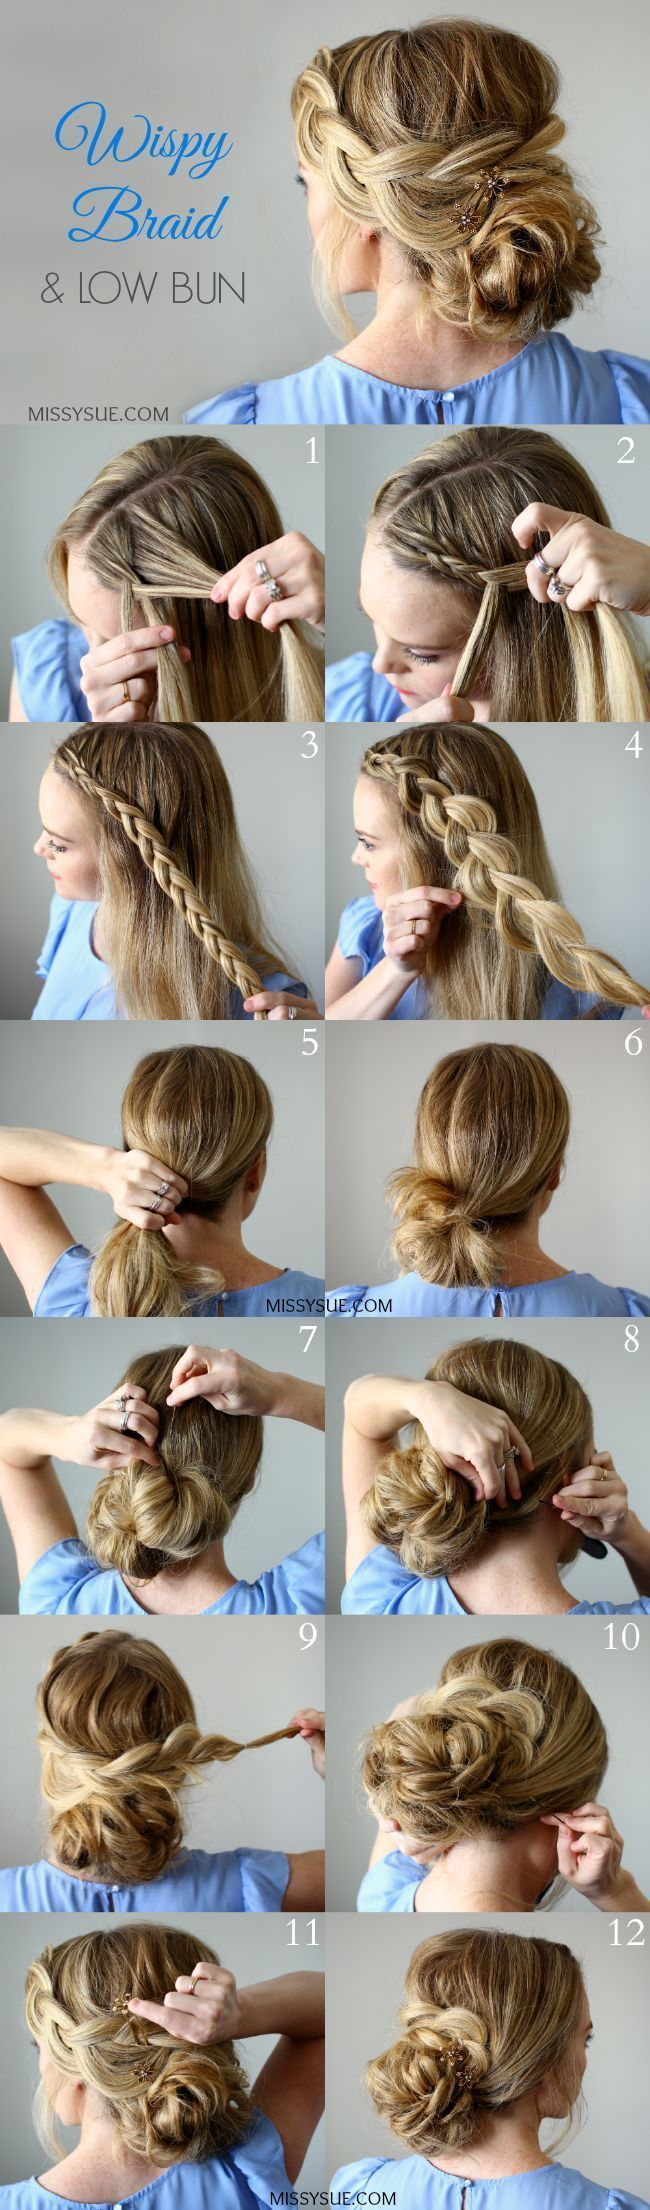 wedding hairstyles tutorial best photos – Cute Wedding Ideas